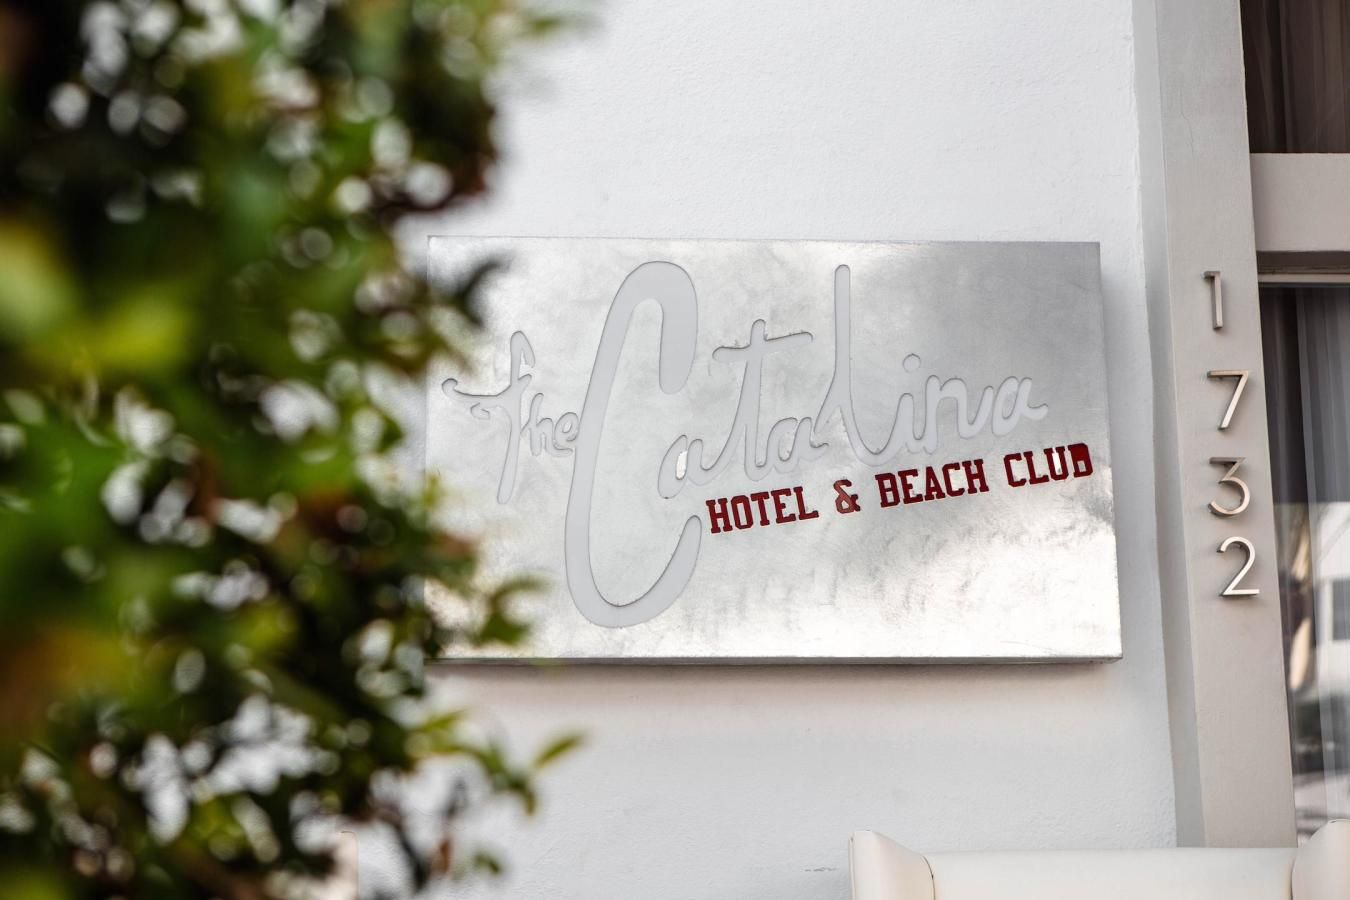 Welcome to the Catalina Hotel & Beach Club